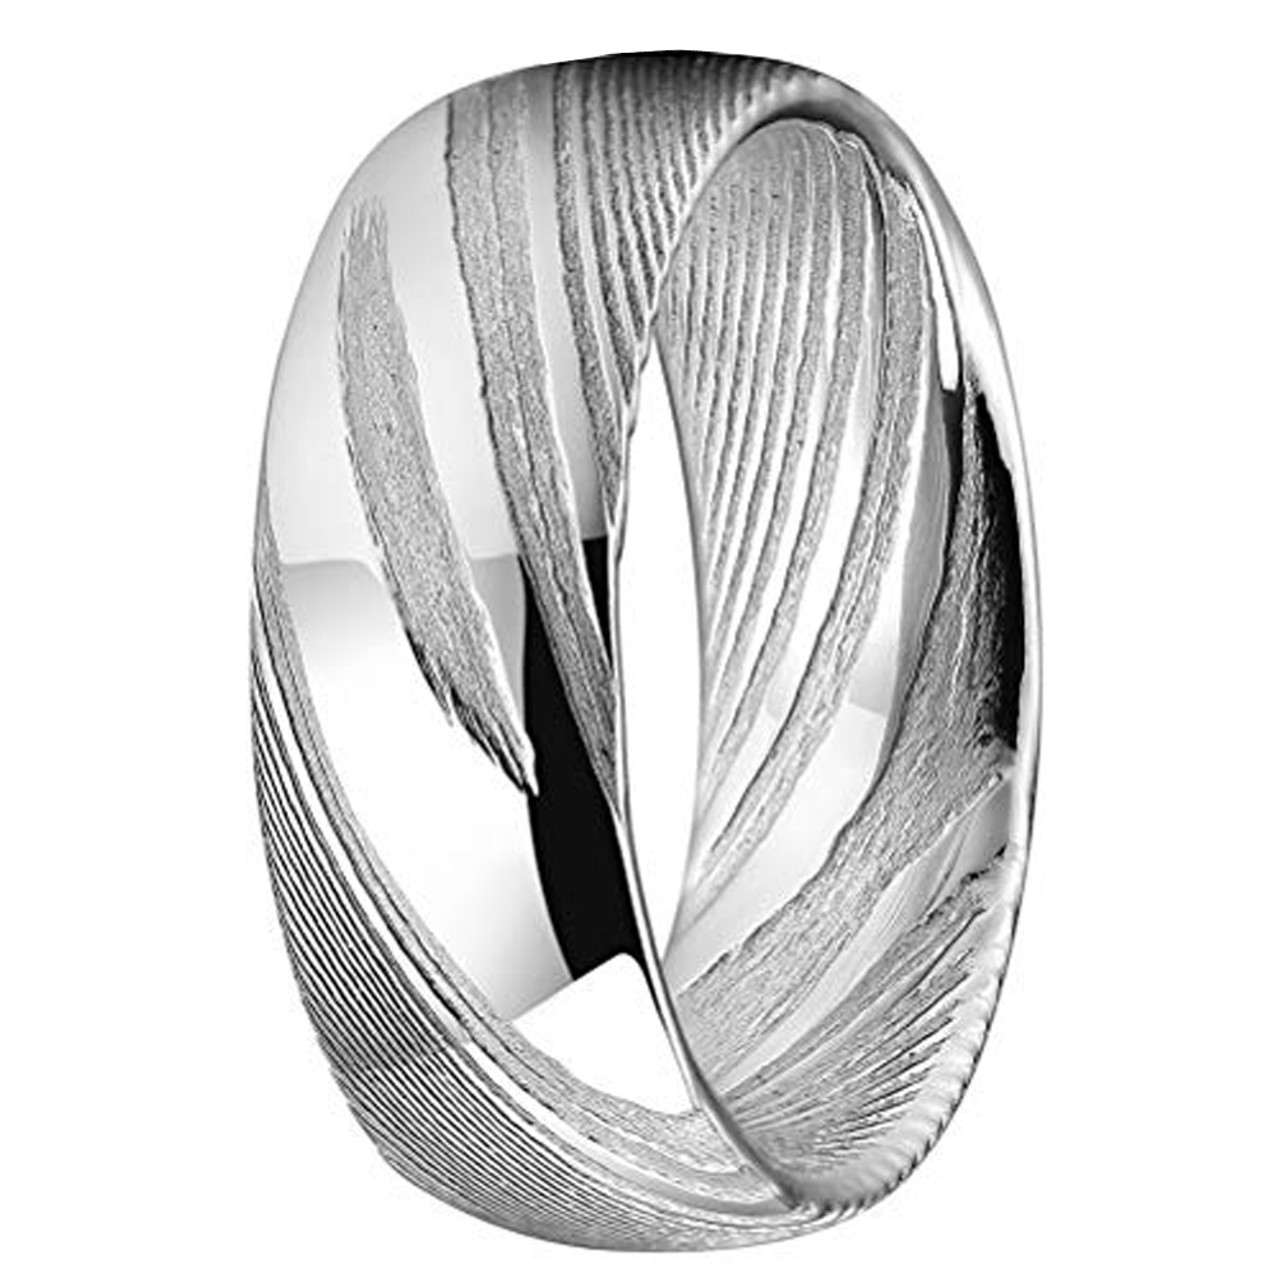 Wedding Bands Classic Bands Domed Bands Stainless Steel 4mm Black IP-plated Polished Band Size 10.5